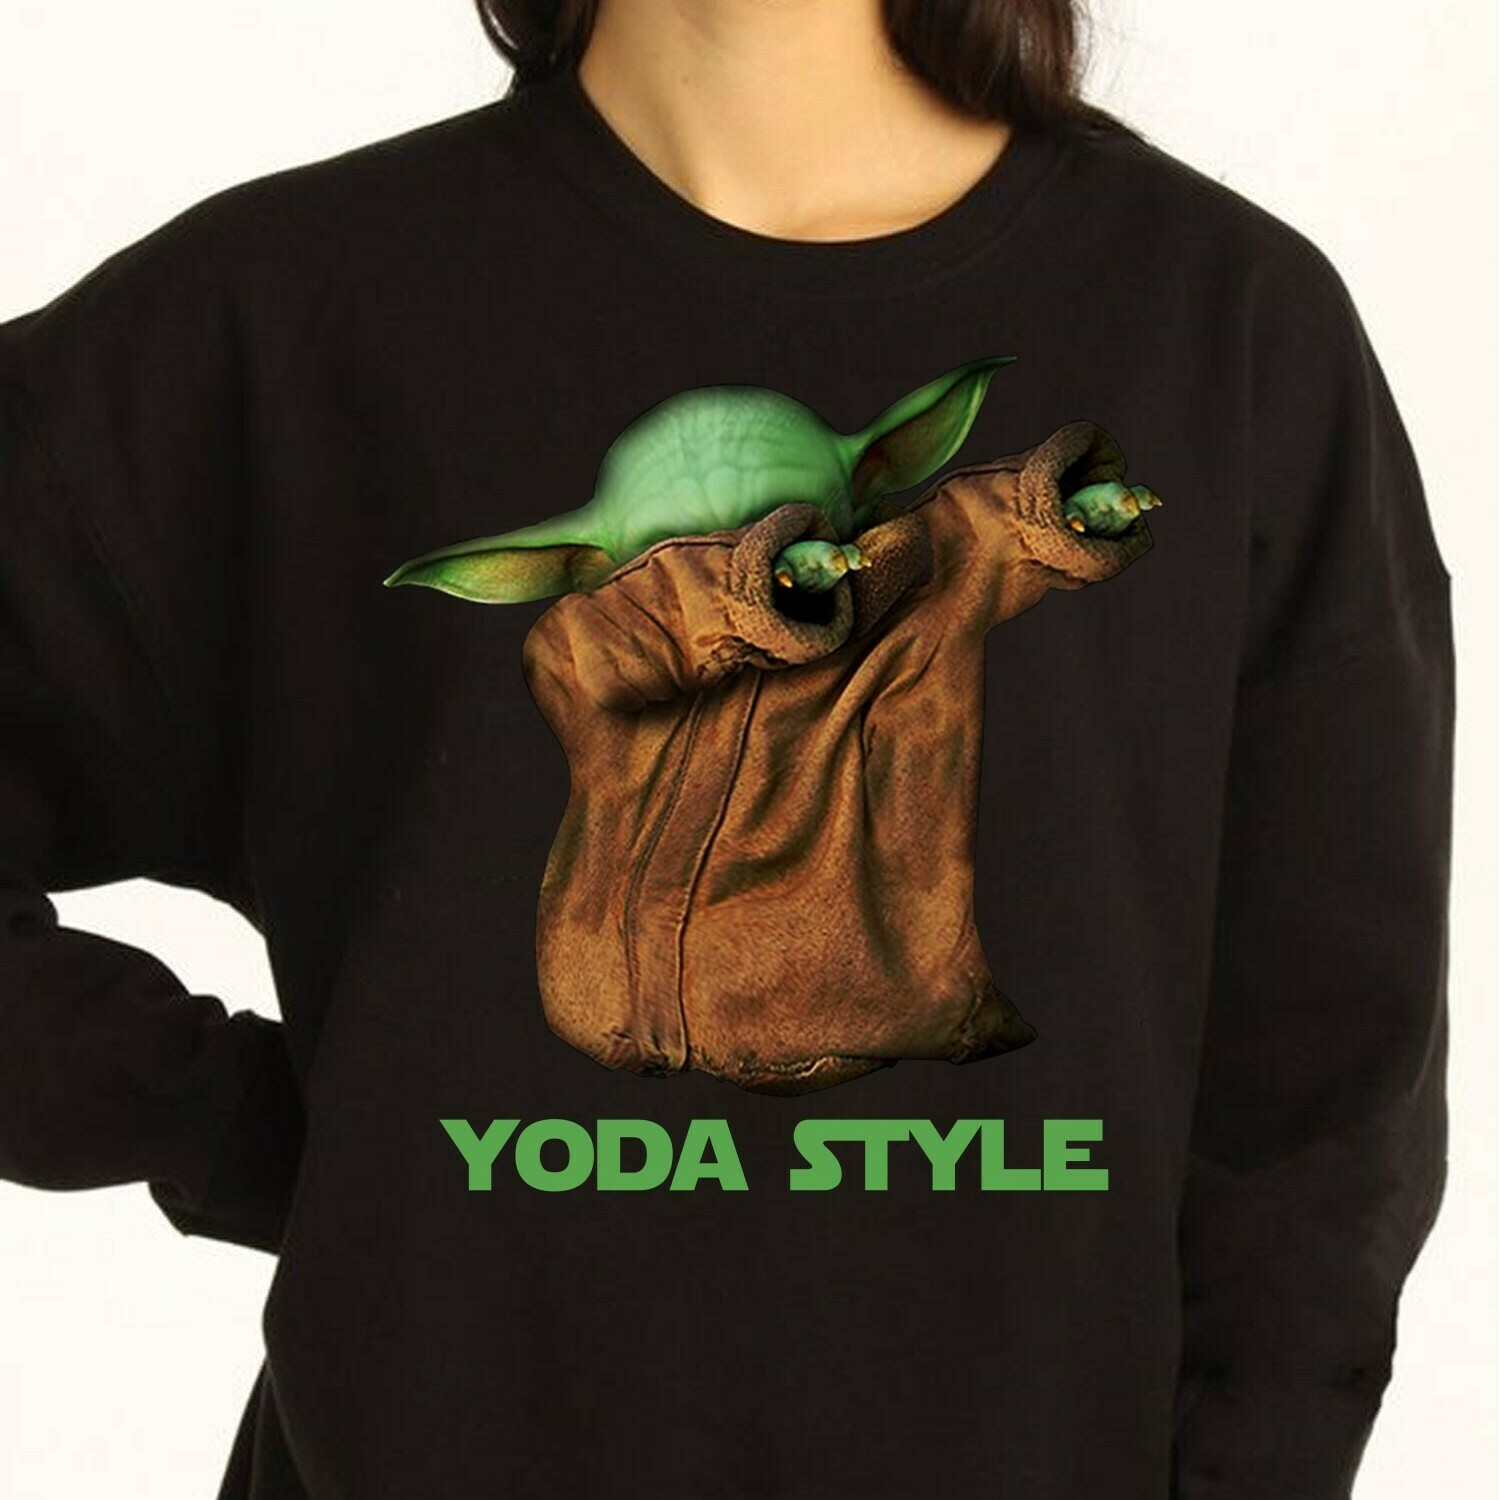 Yoda style Baby Yoda shirt,Star wars shirt,The Mandalorian The Child Discovery Silhouette,Baby Yoda The Child Unknown Species T-Shirt Long Sleeve Sweatshirt Hoodie Jolly Family Gifts